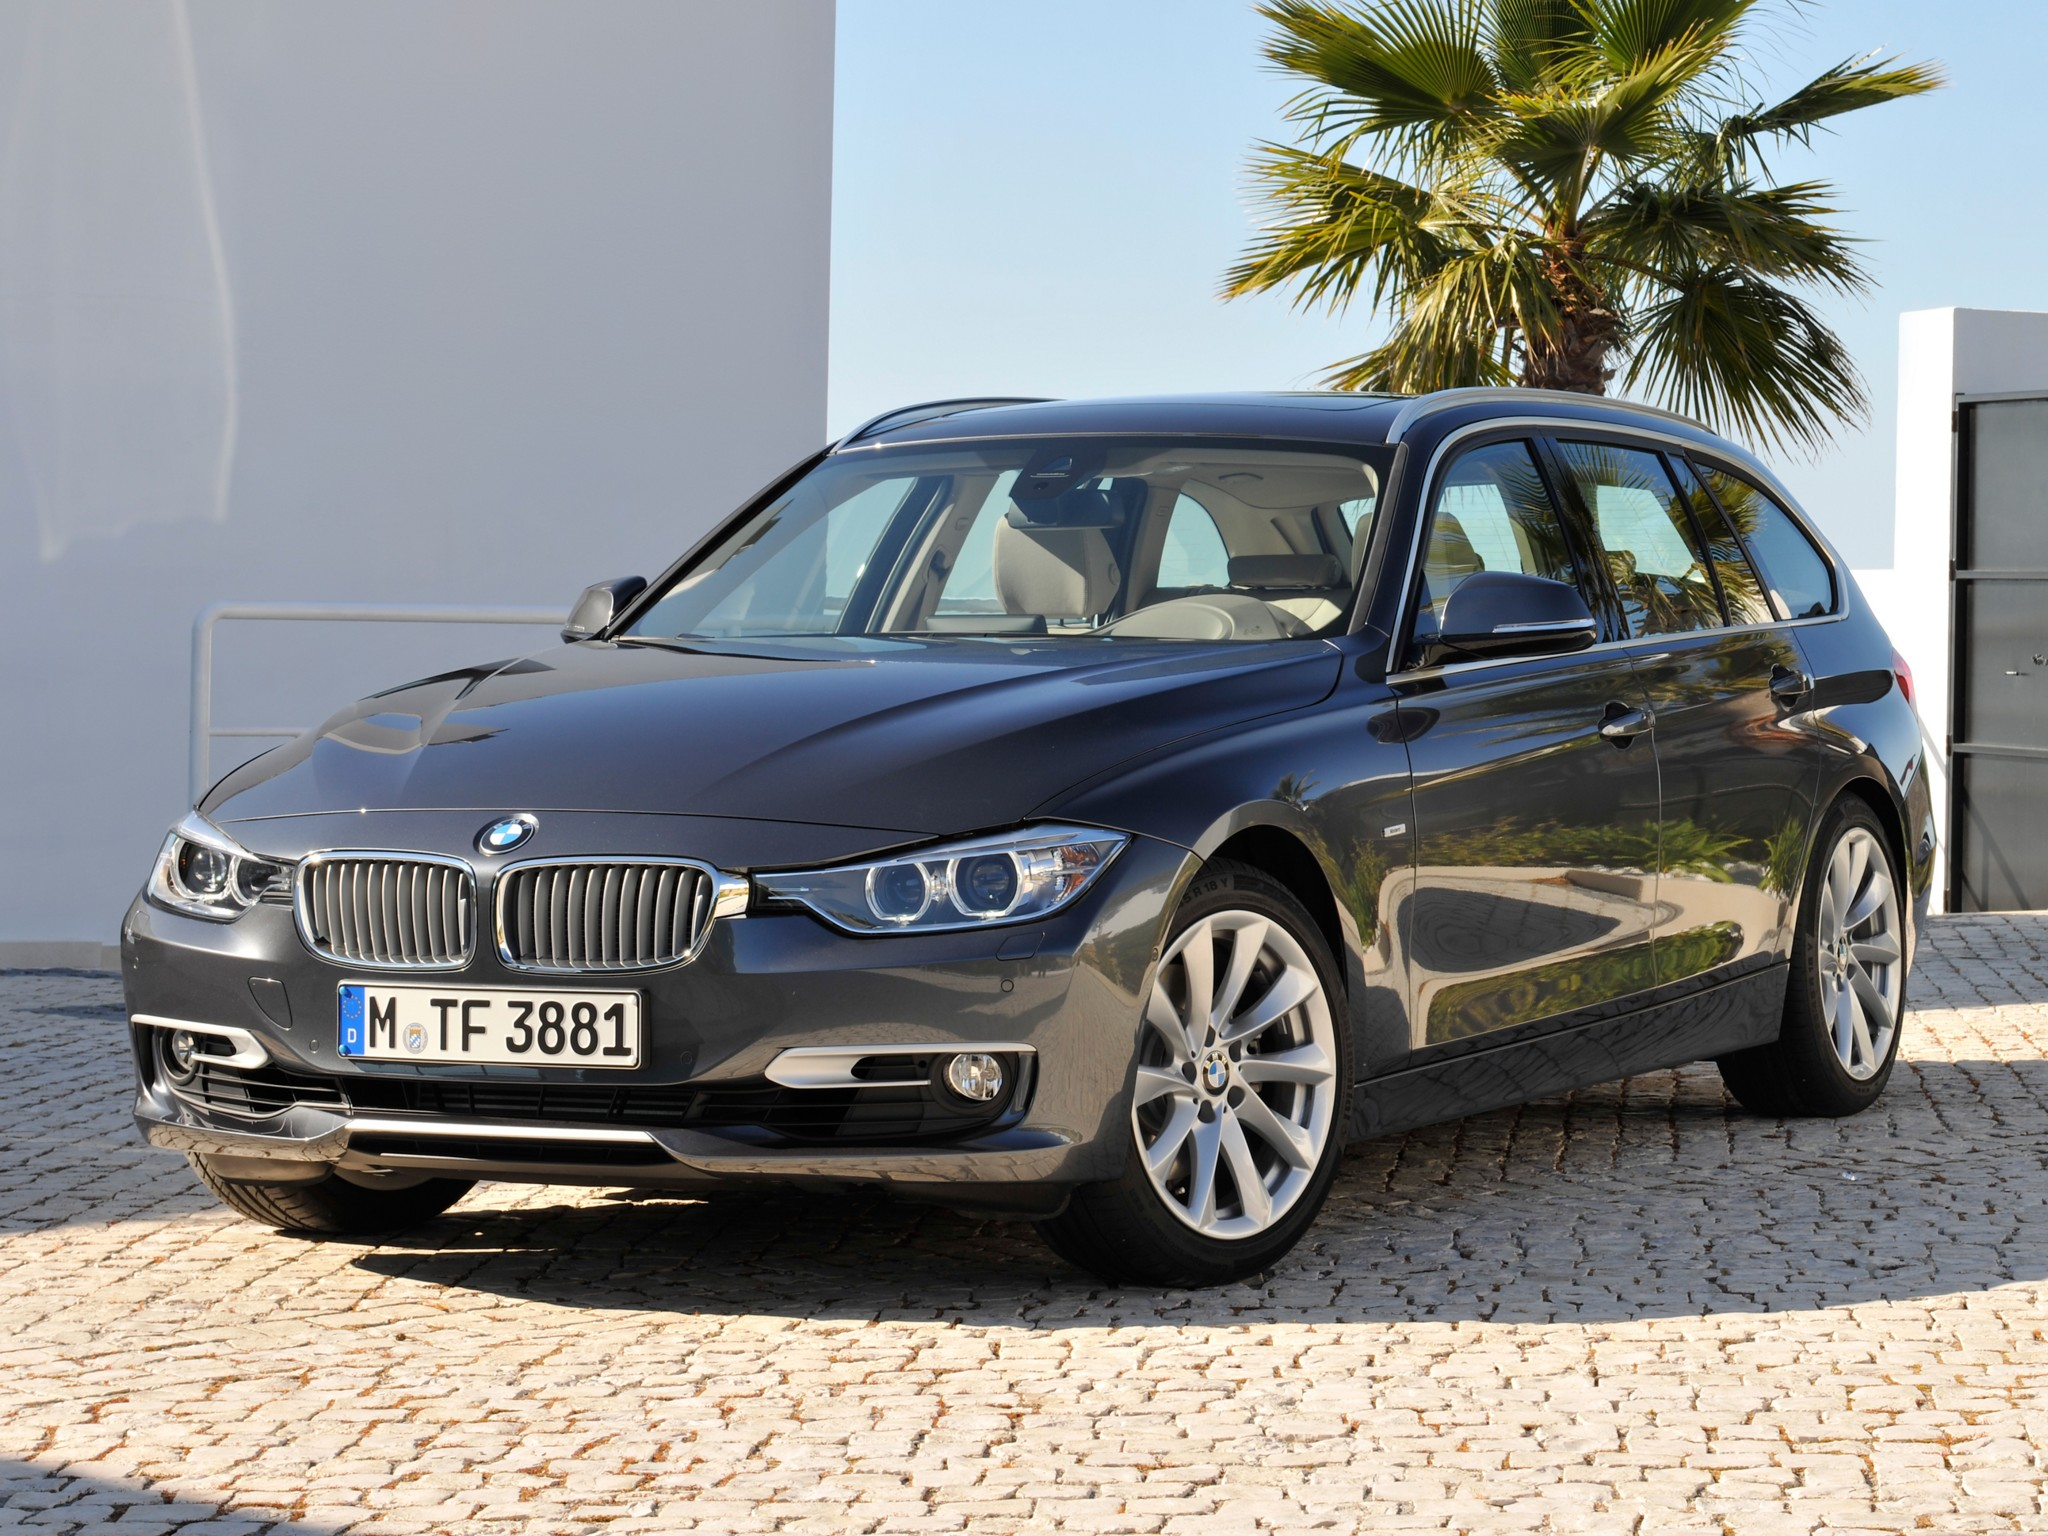 BMW 3 series 330d 2012 photo - 1